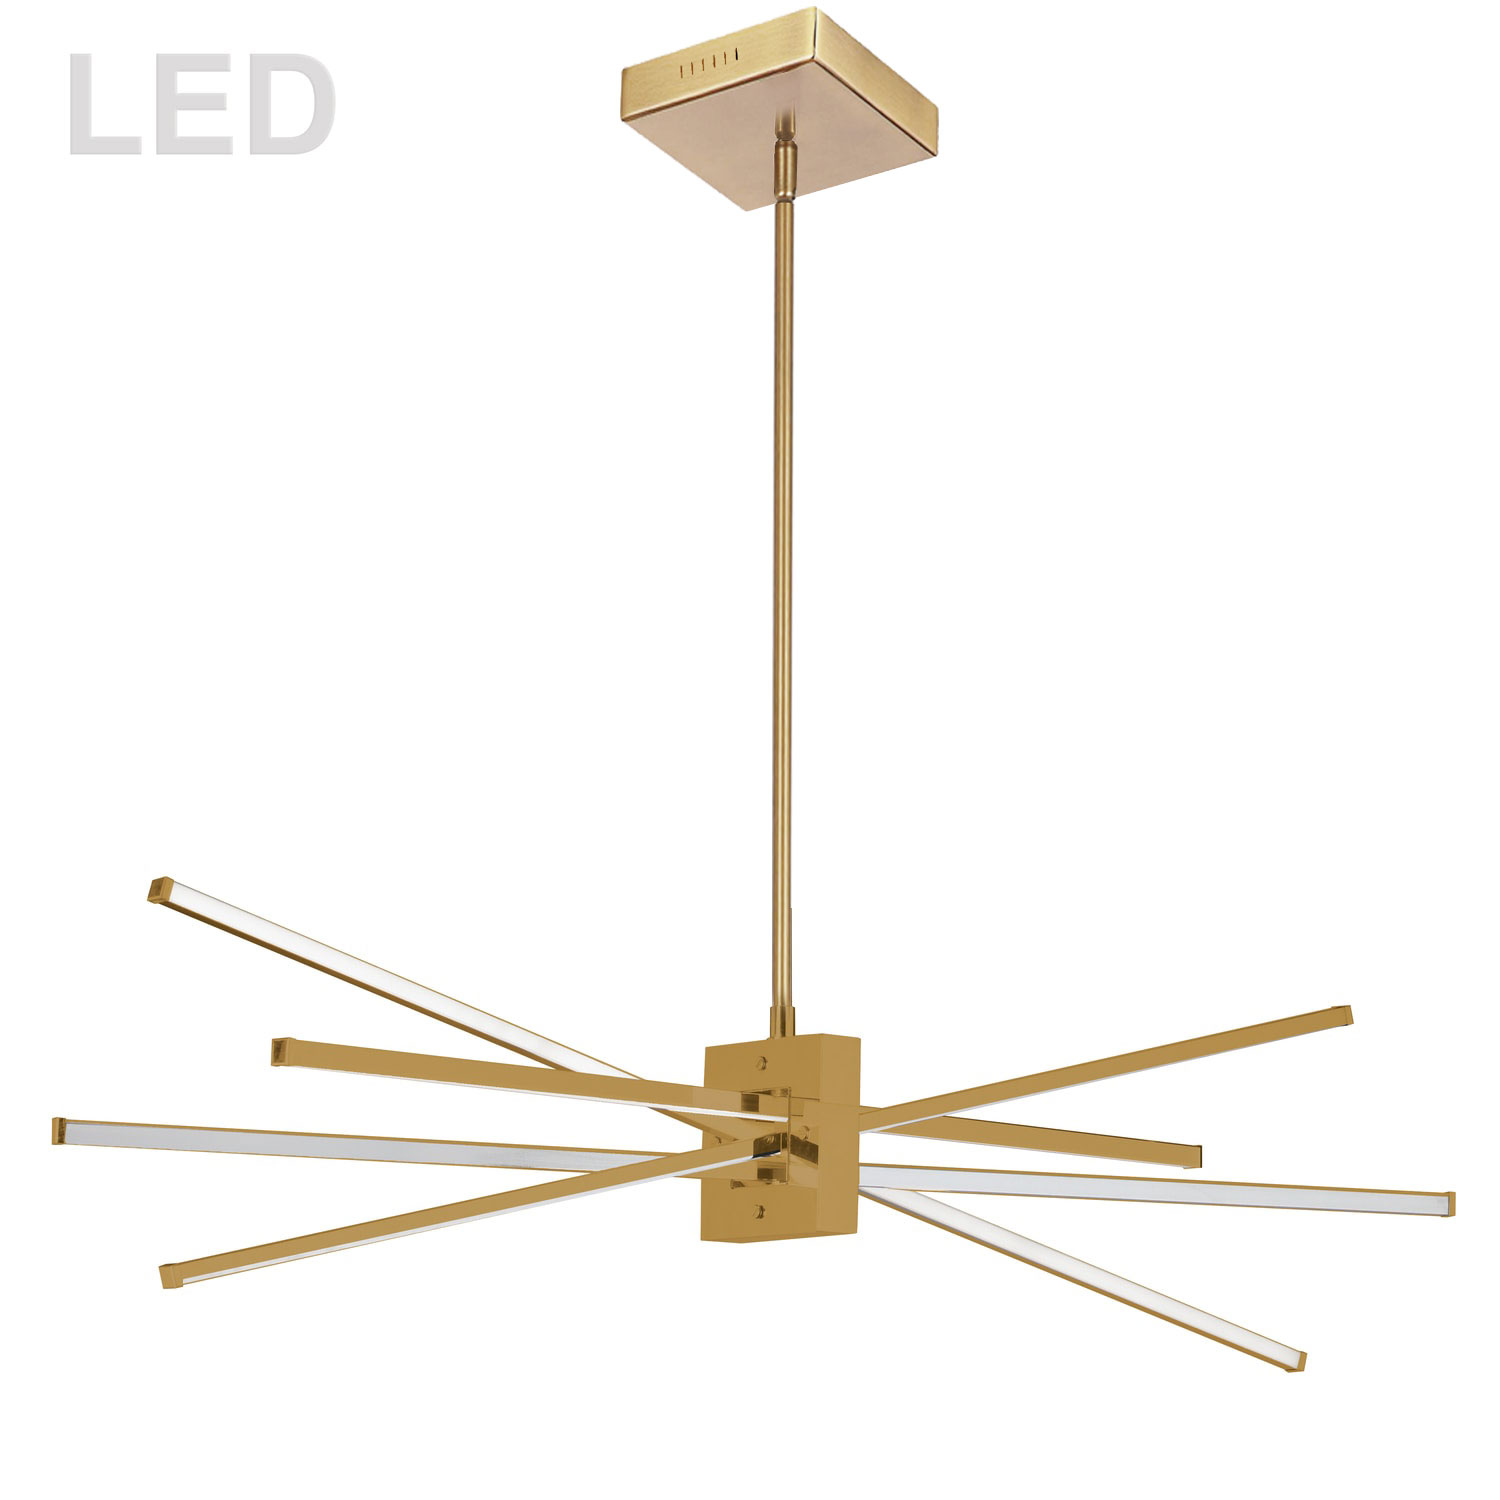 46W Horizontal Pendant, Aged Brass with White Diffuser